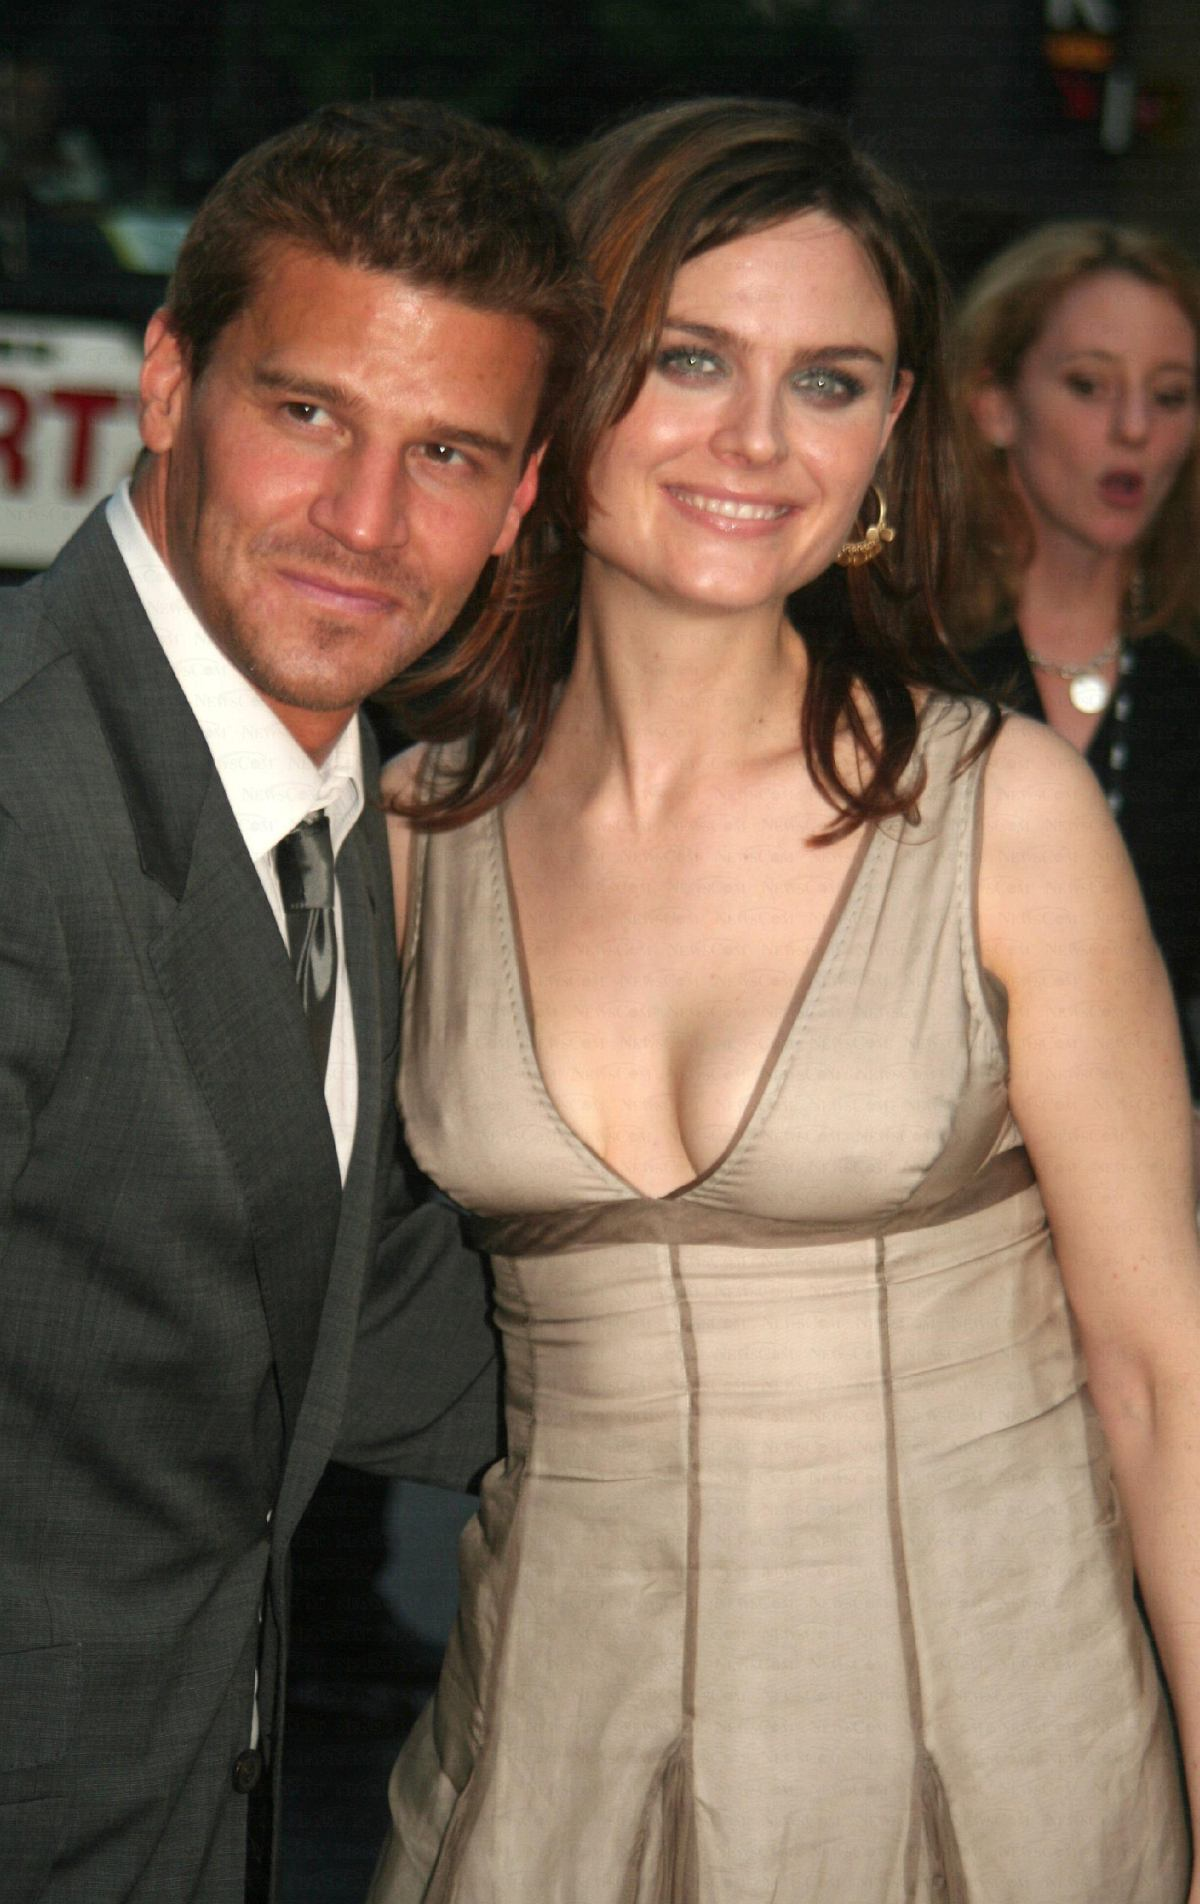 David and Emily - David Boreanaz Photo (640813) - Fanpop